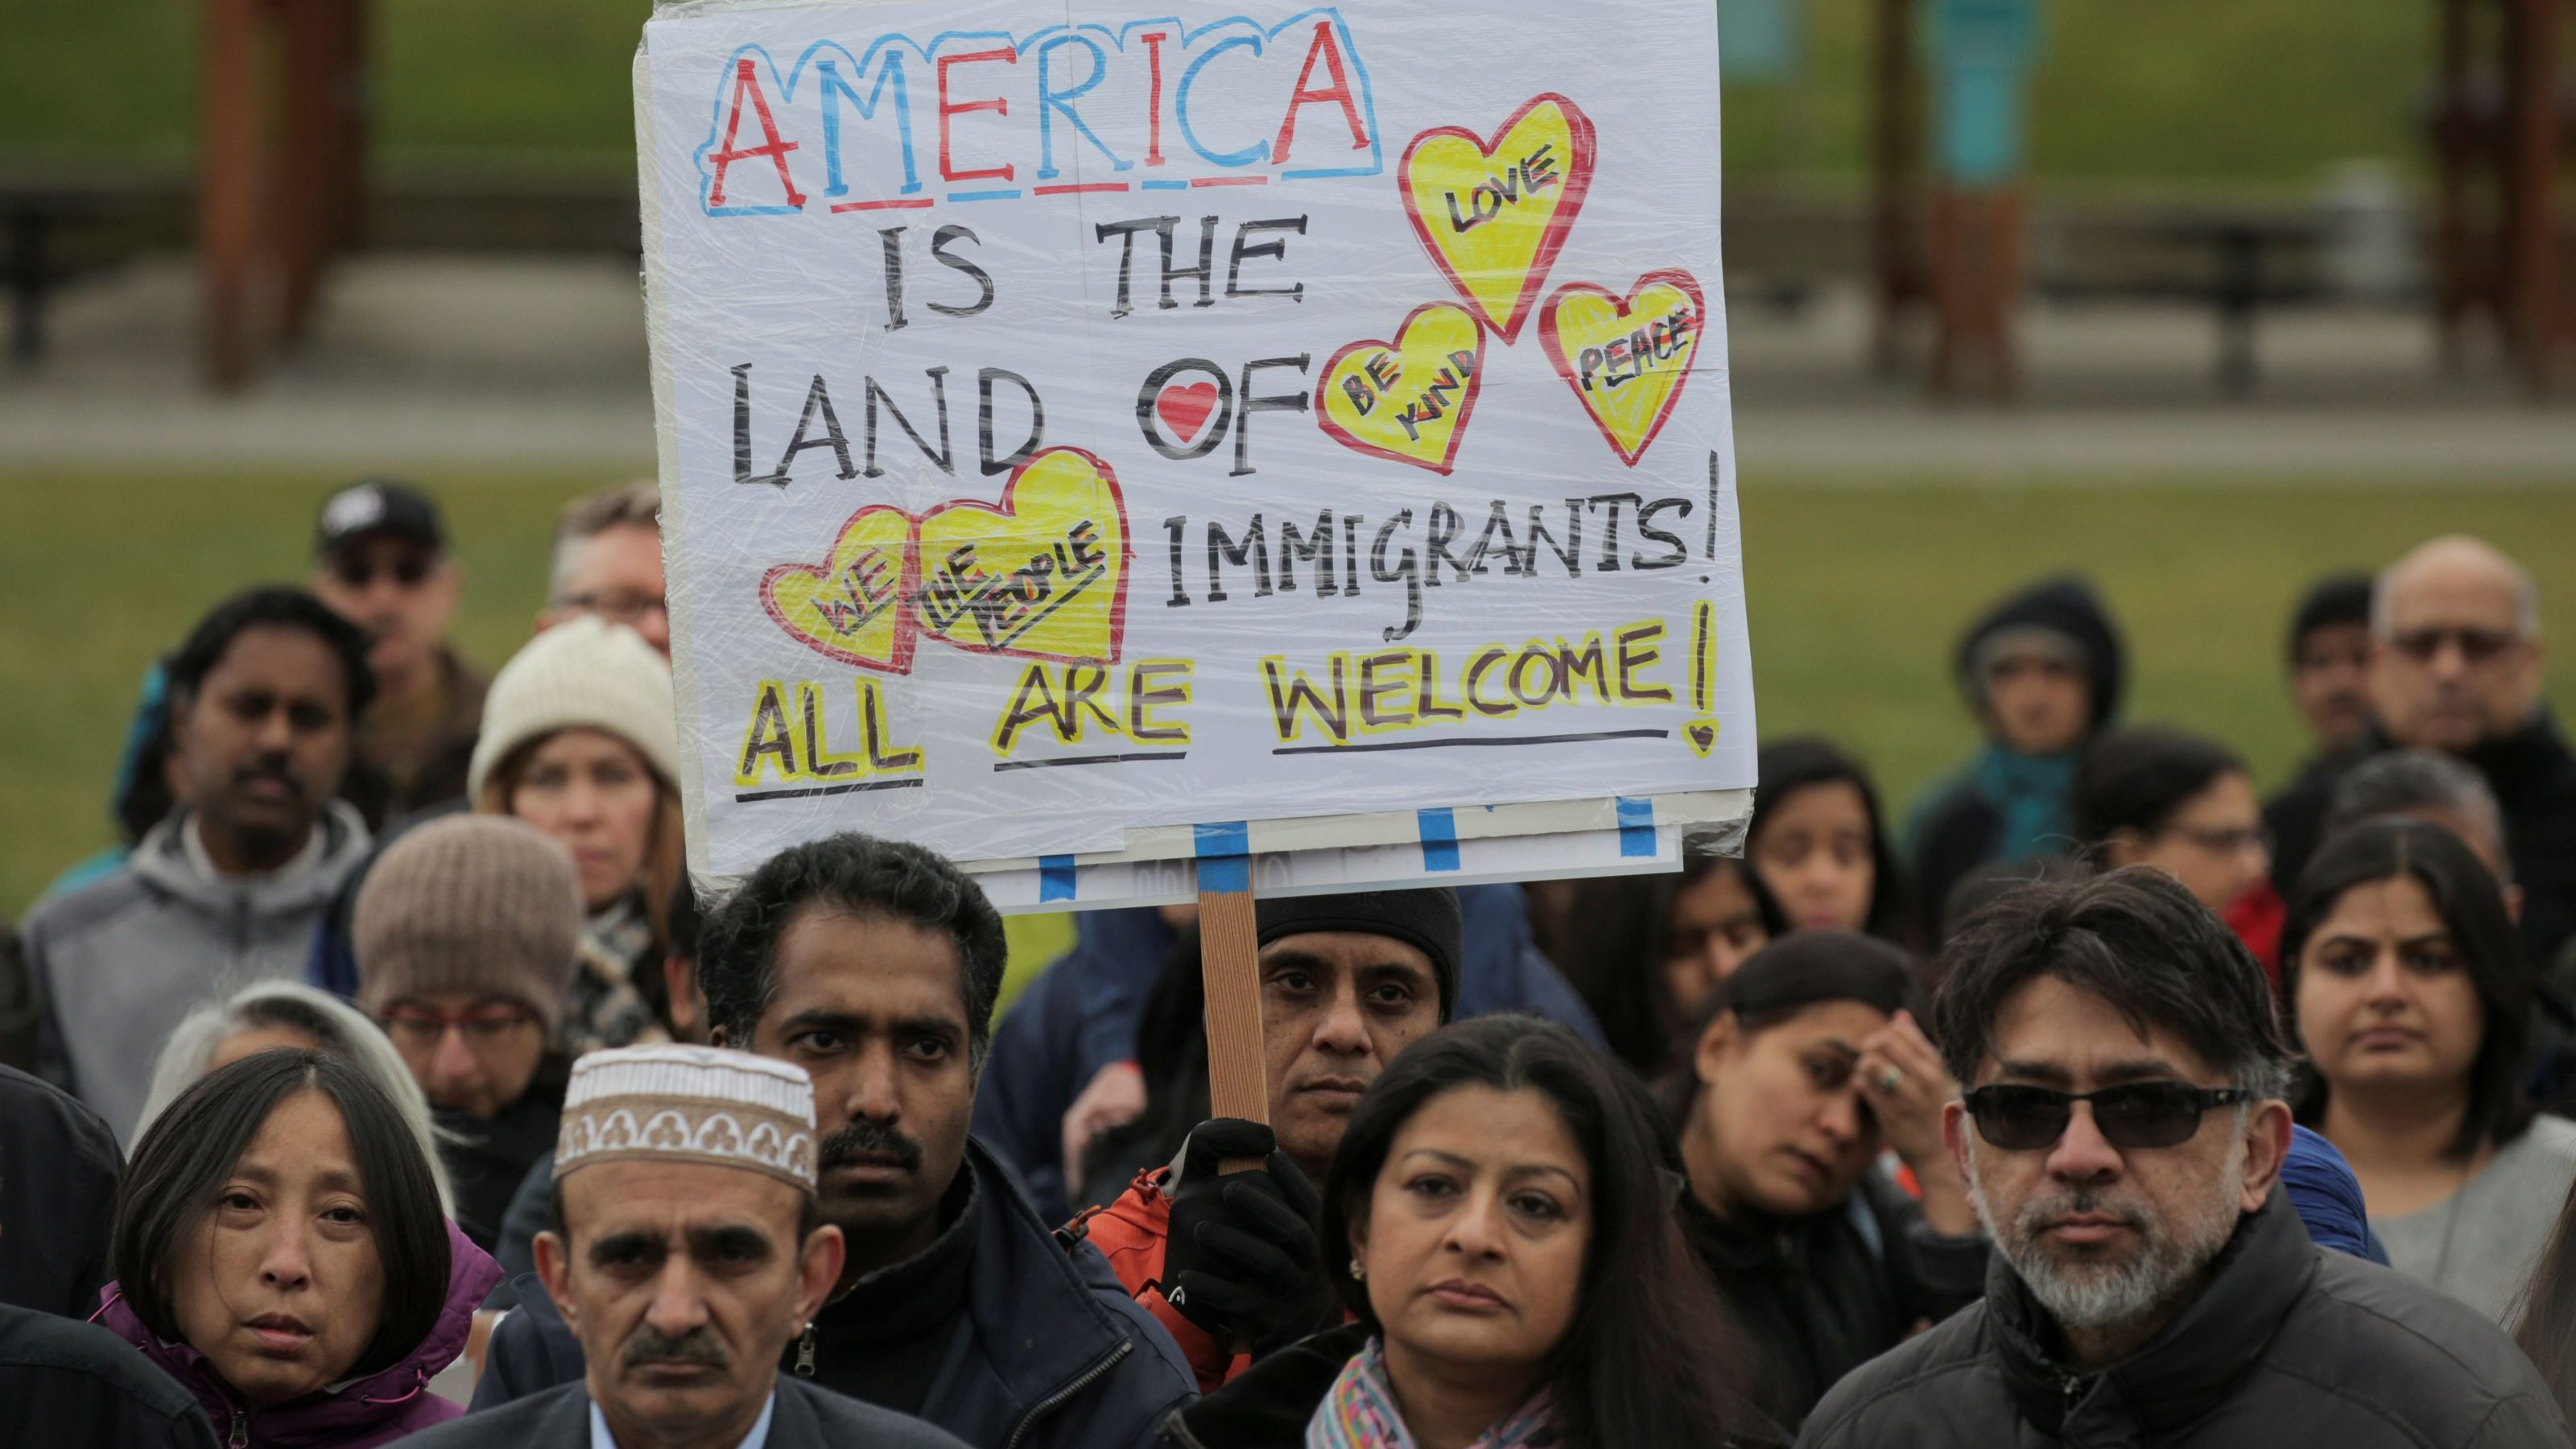 People listen during a vigil in honor of Srinivas Kuchibhotla, an immigrant from India who was recently shot and killed in Kansas, at Crossroads Park in Bellevue, Washington